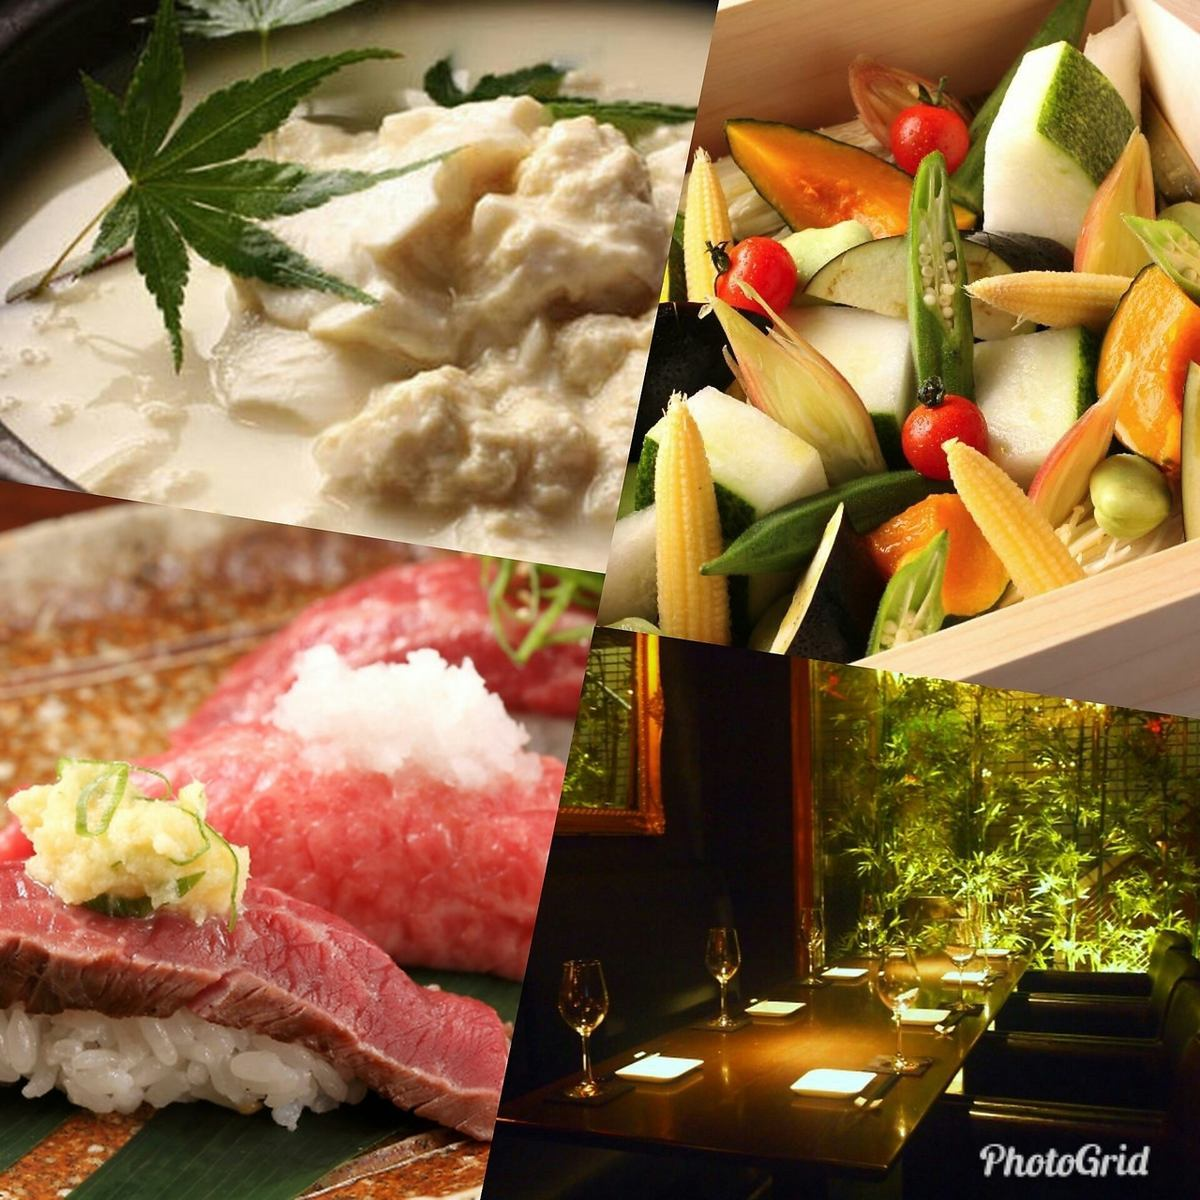 ◆ Ebisu's retreat home for celebrities to visit! Enjoy the four seasons of Kyoto cuisine and beauty in a fashionable shop